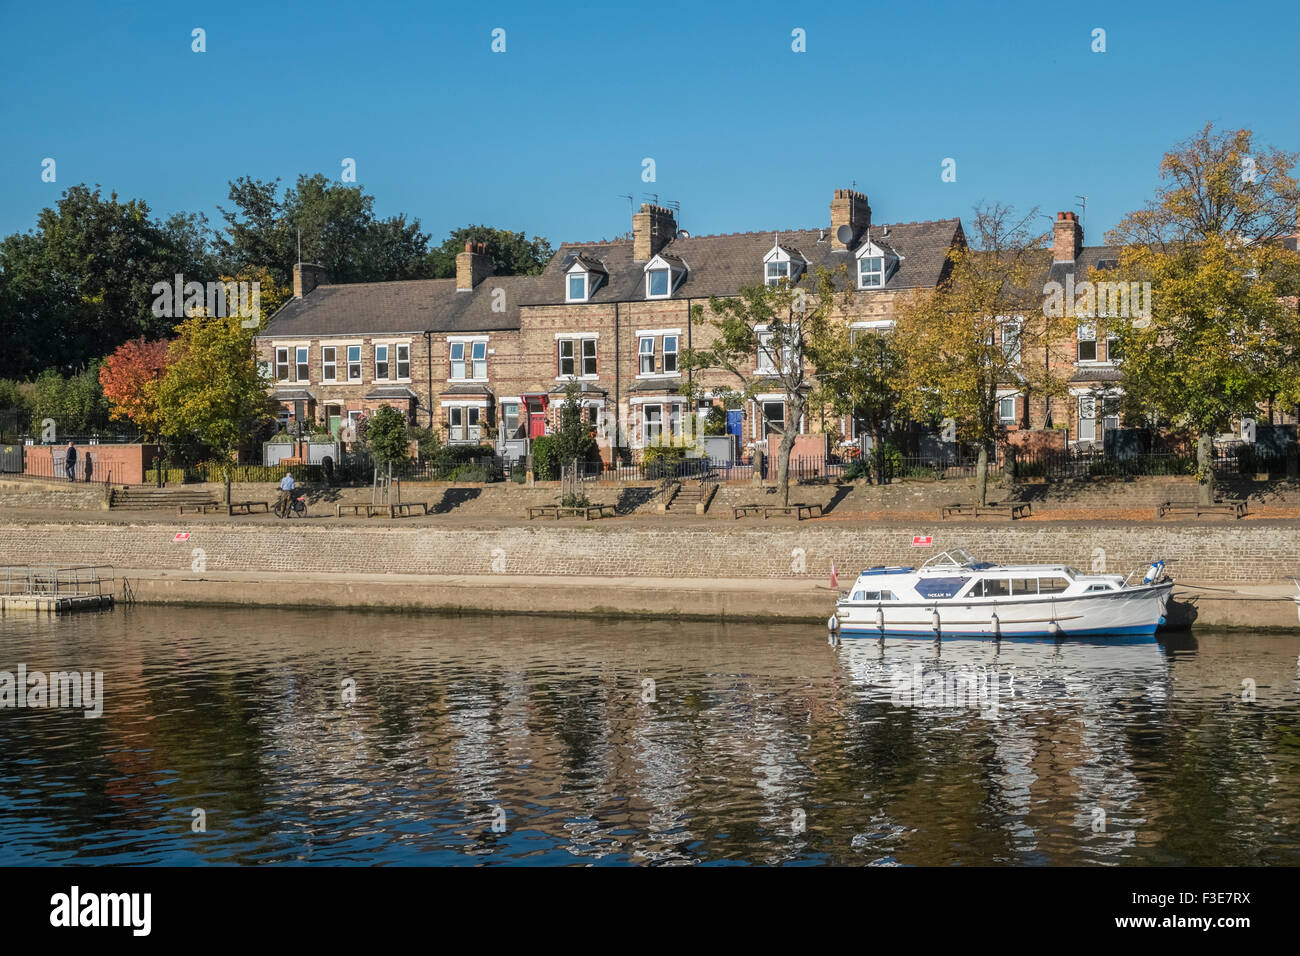 Terrace houses fronting the River Ouse, York, North Yorkshire, England UK - Stock Image